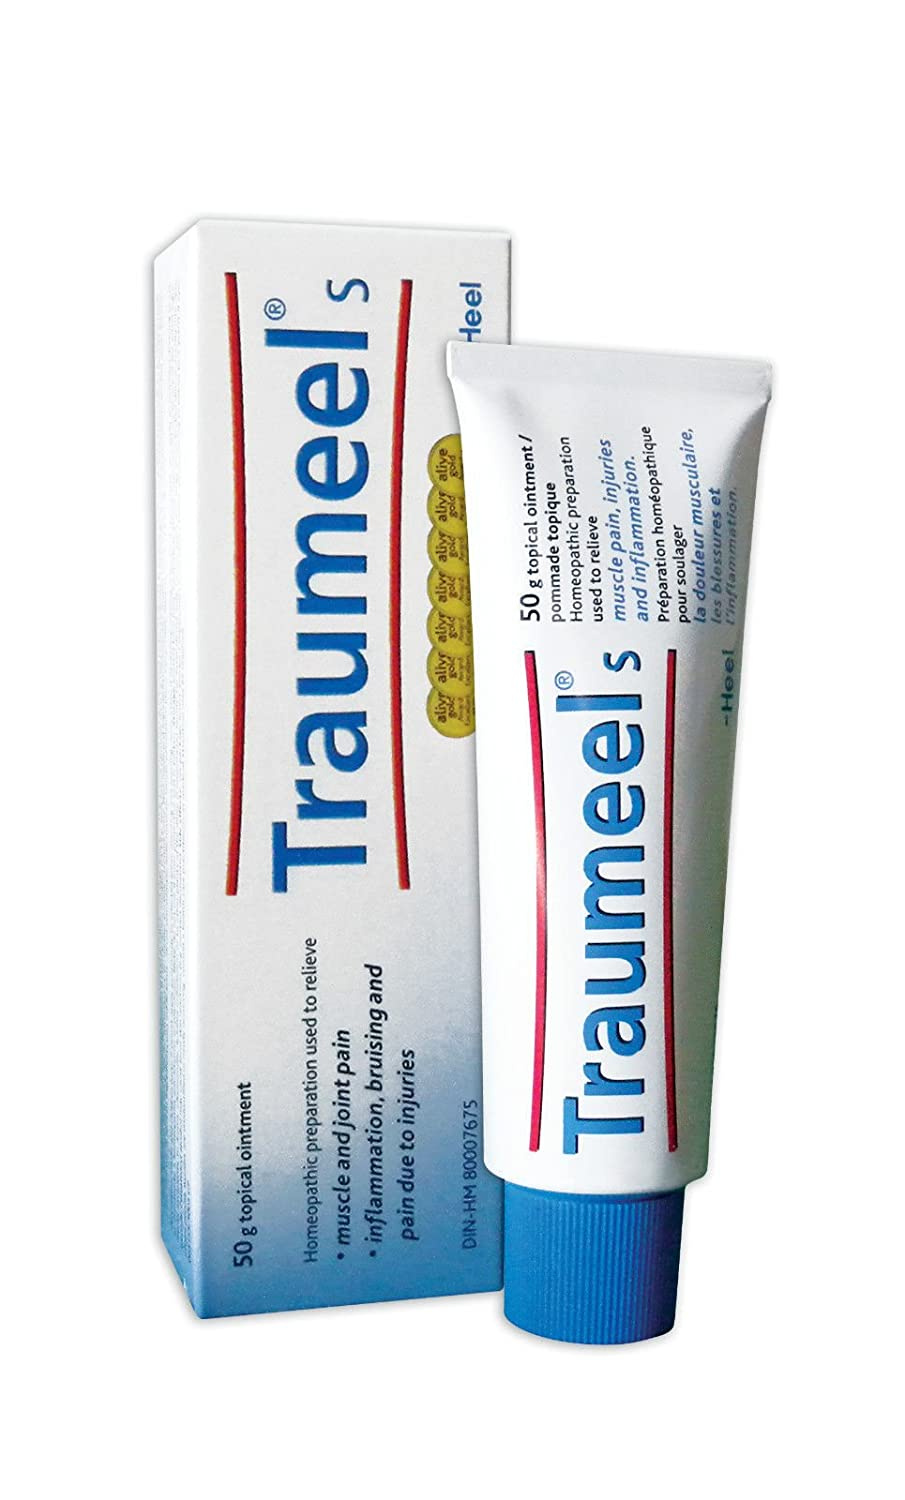 Homeopathic preparation Traumeel C